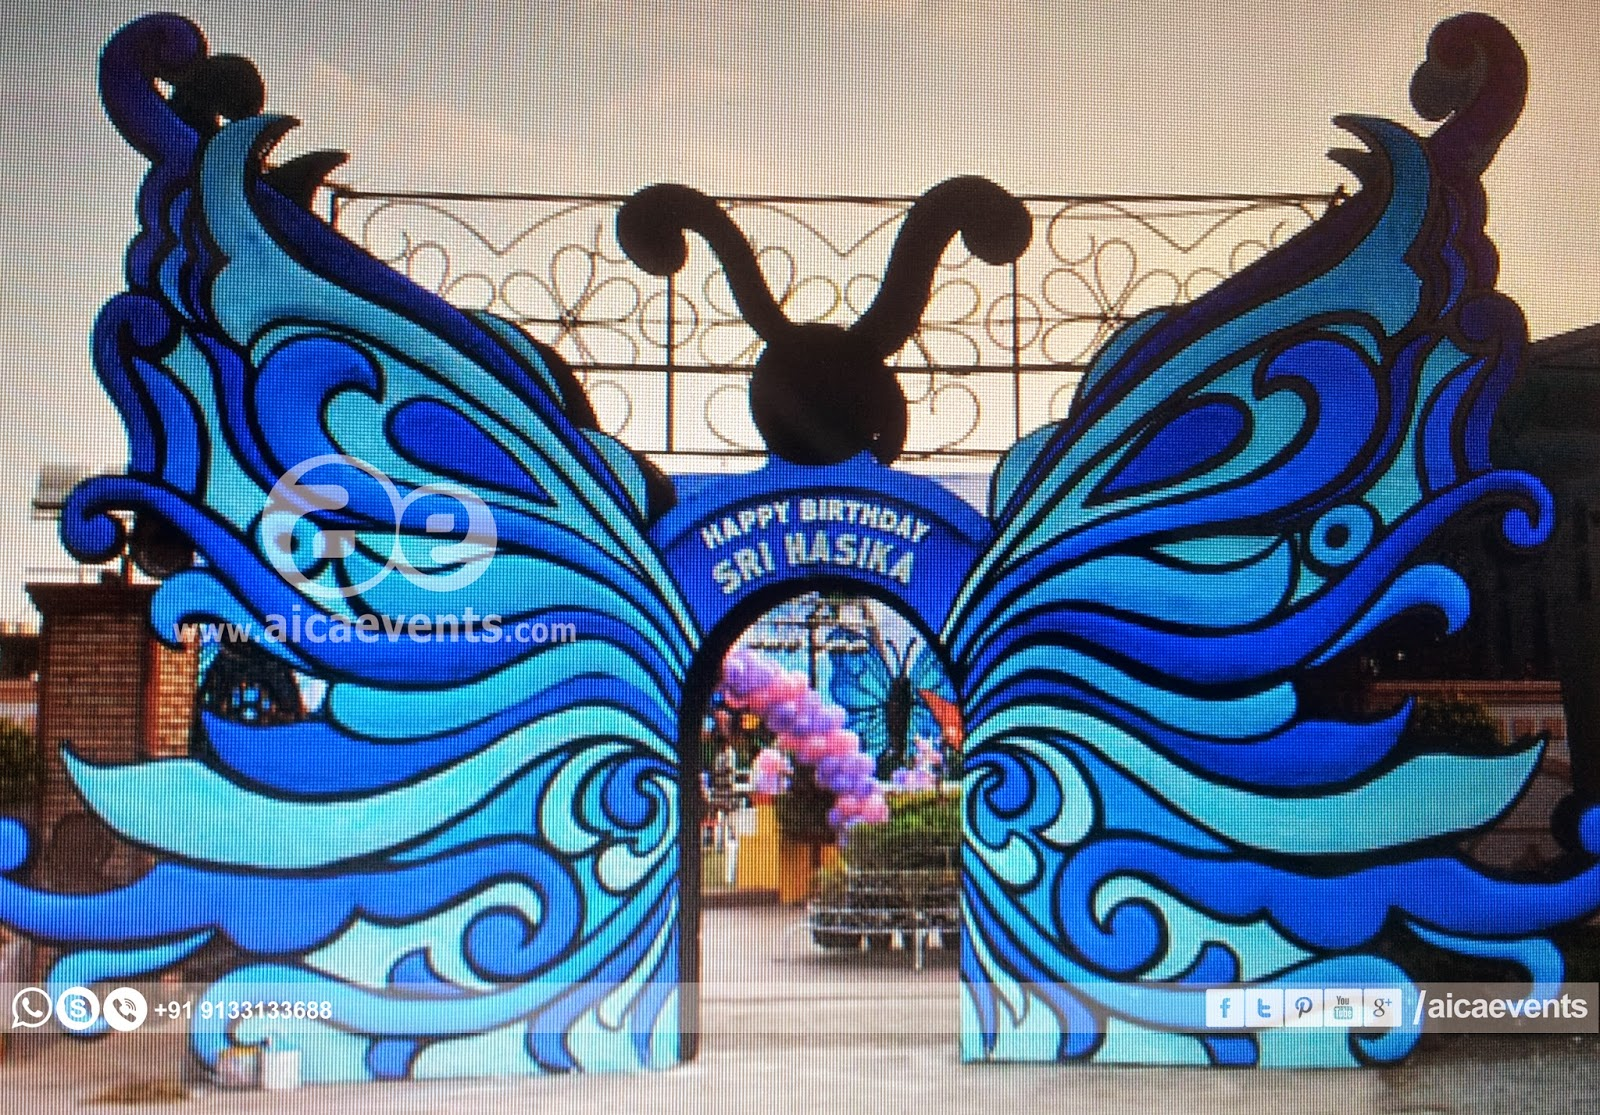 Well-known Aicaevents India: Butterfly Theme Birthday Party RL98